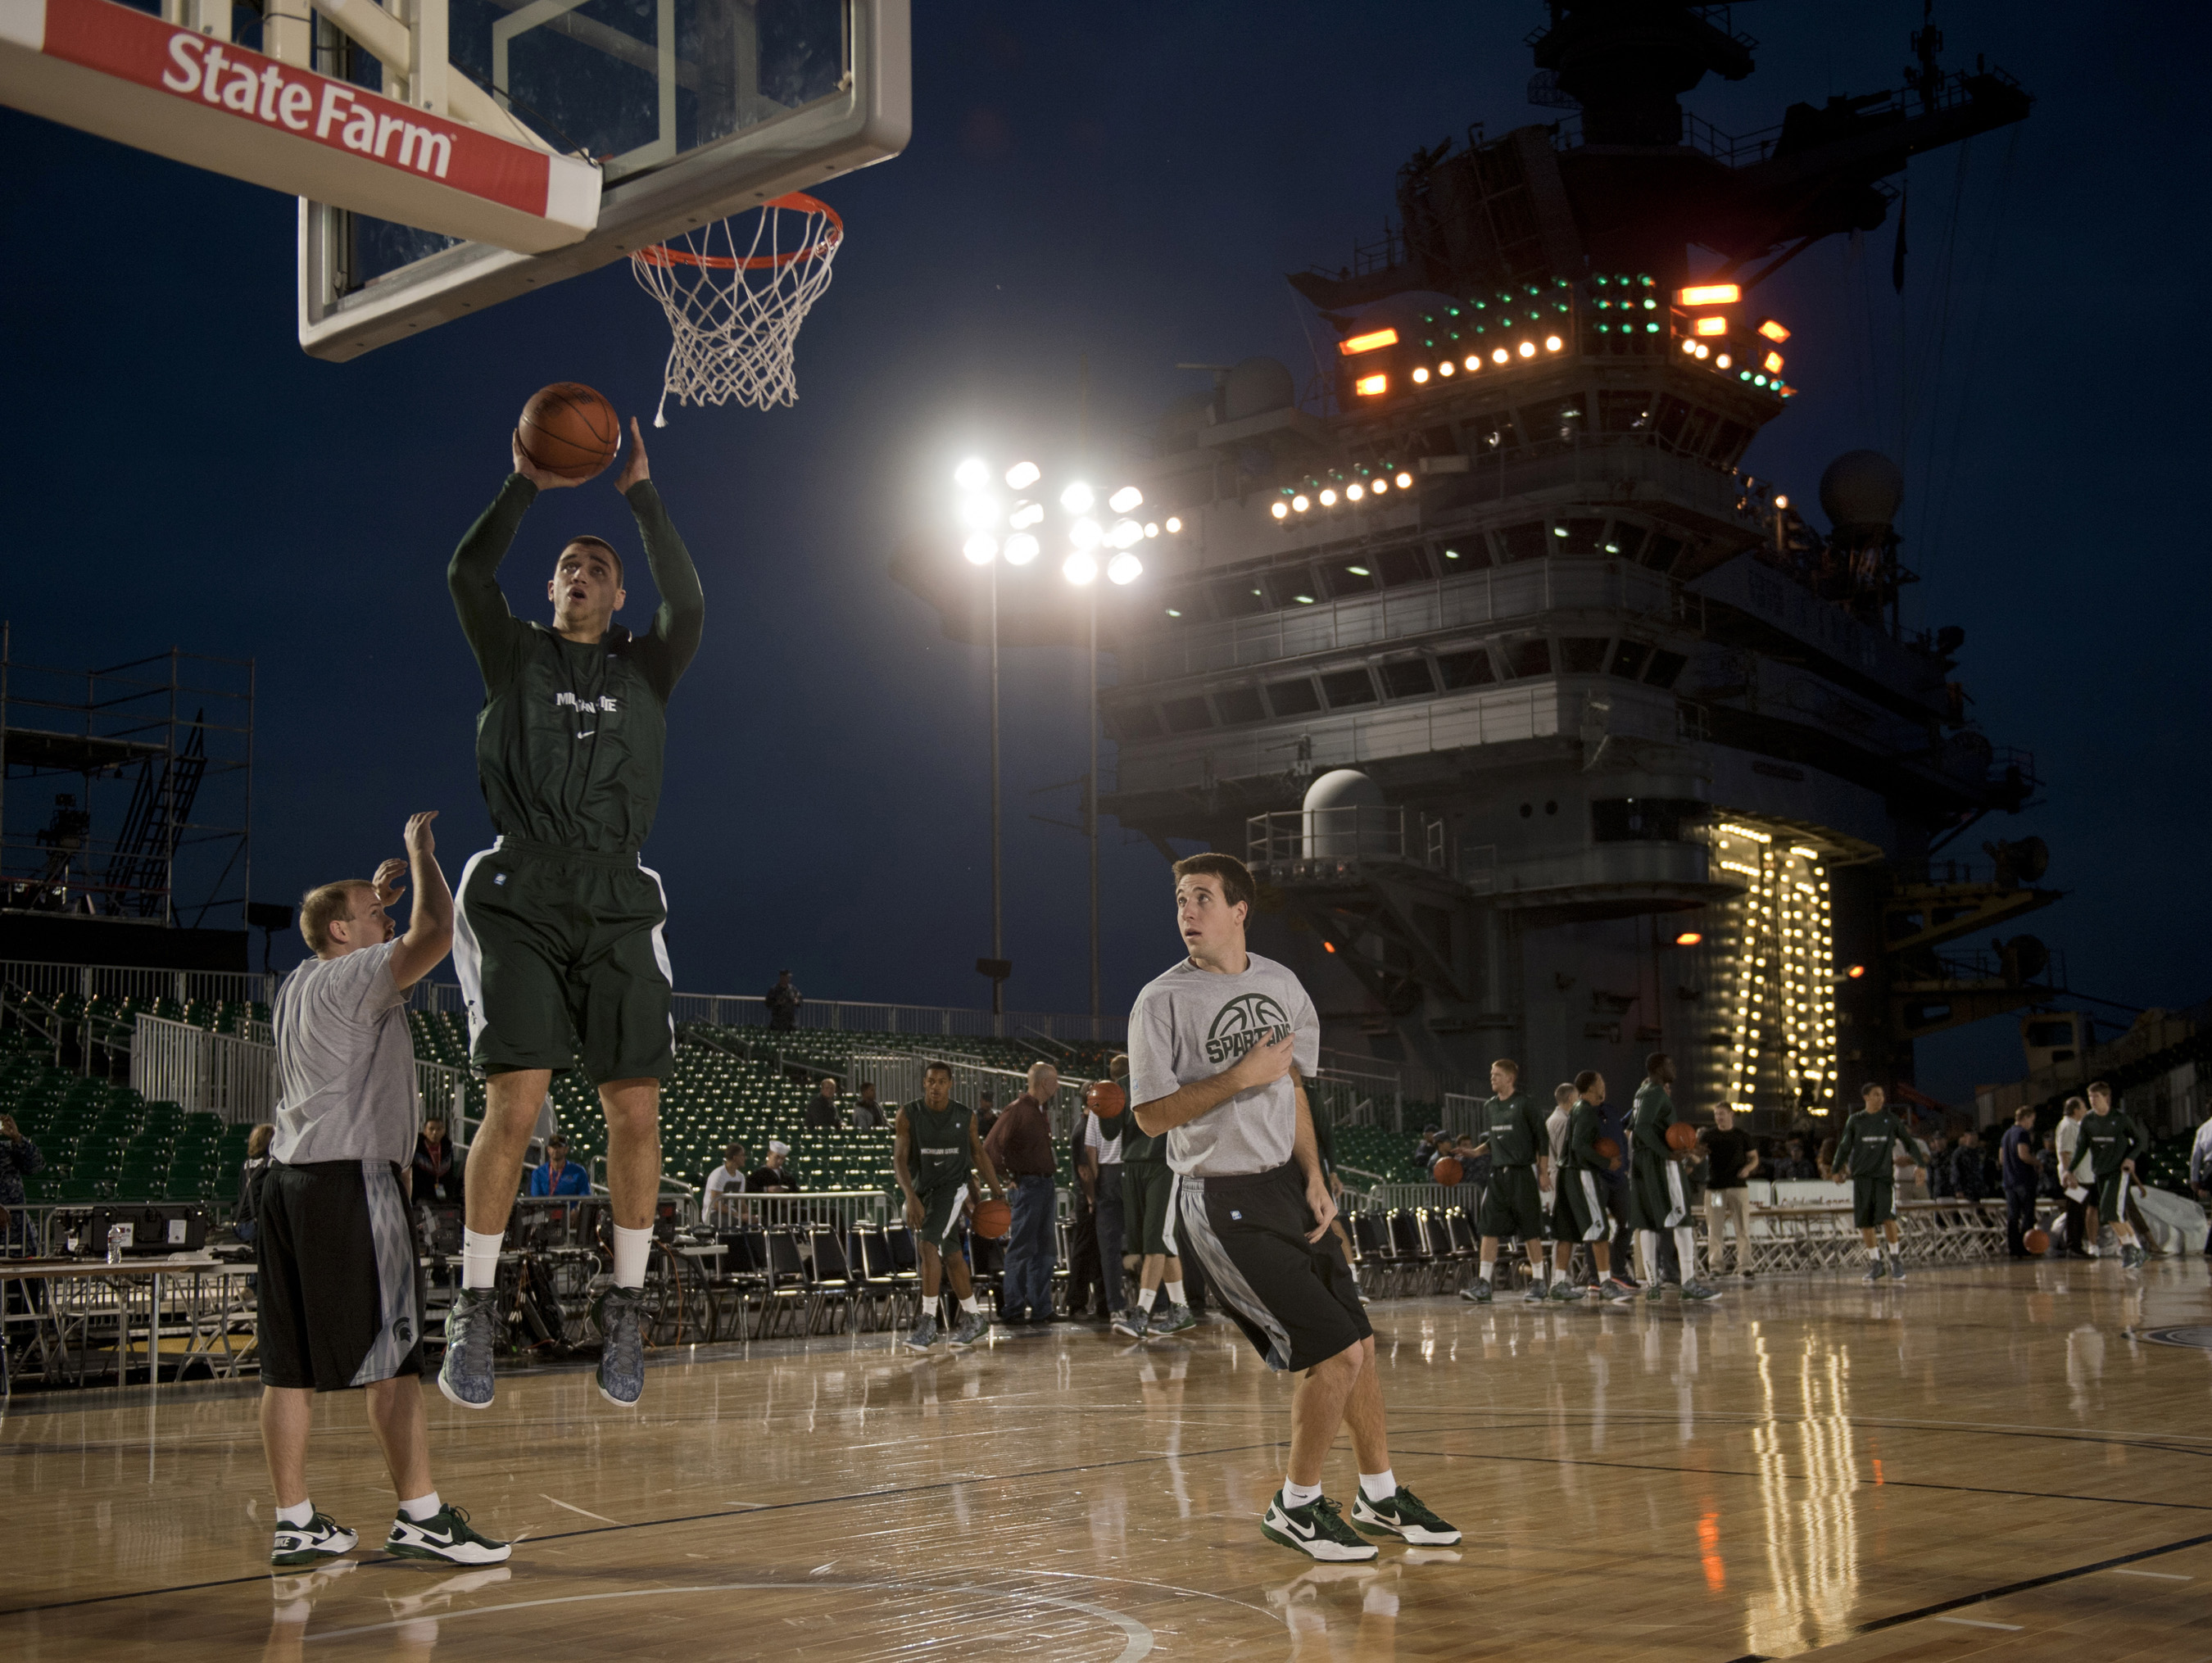 File:US Navy 111110-N-DR144-737 Michigan State University ...